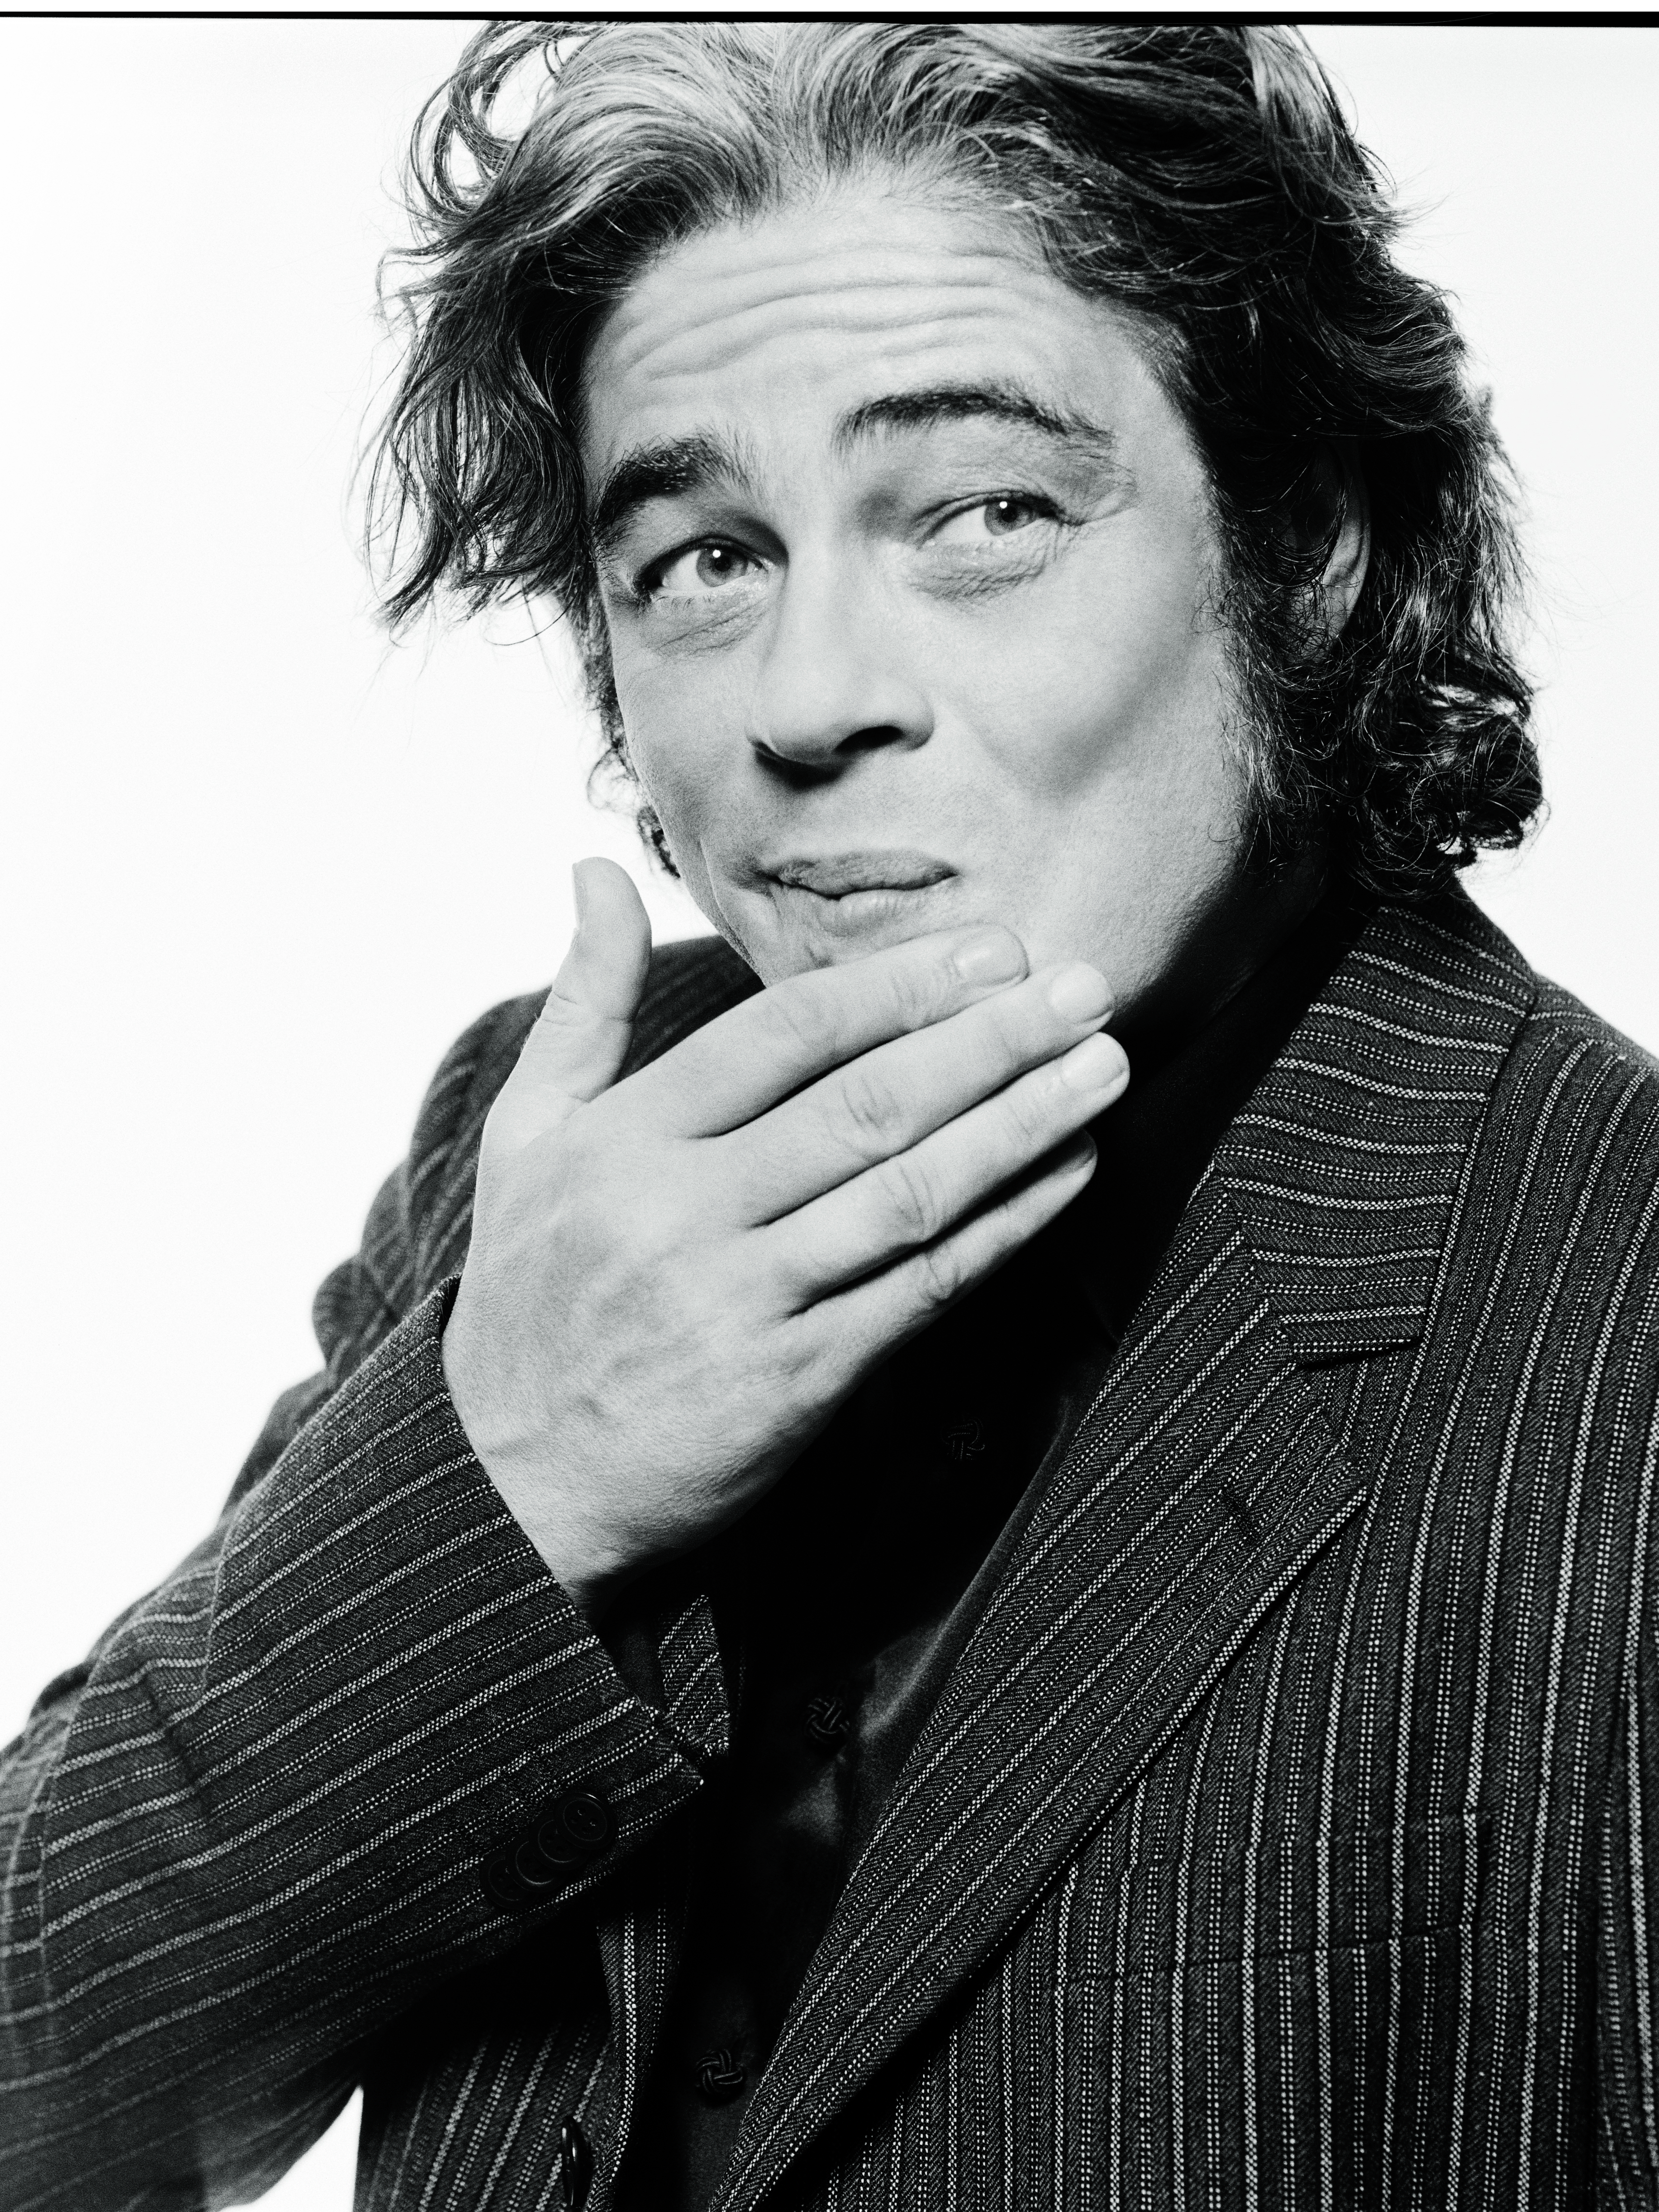 In 2003, Raccuglia photographed Benicio del Toro in Los Angeles, the same year that his hit films The Hunted and 21 Grams were in theaters. Del Toro was nominated for an Academy Award for Best Supporting Actor for his role in the crime drama 21 Grams.